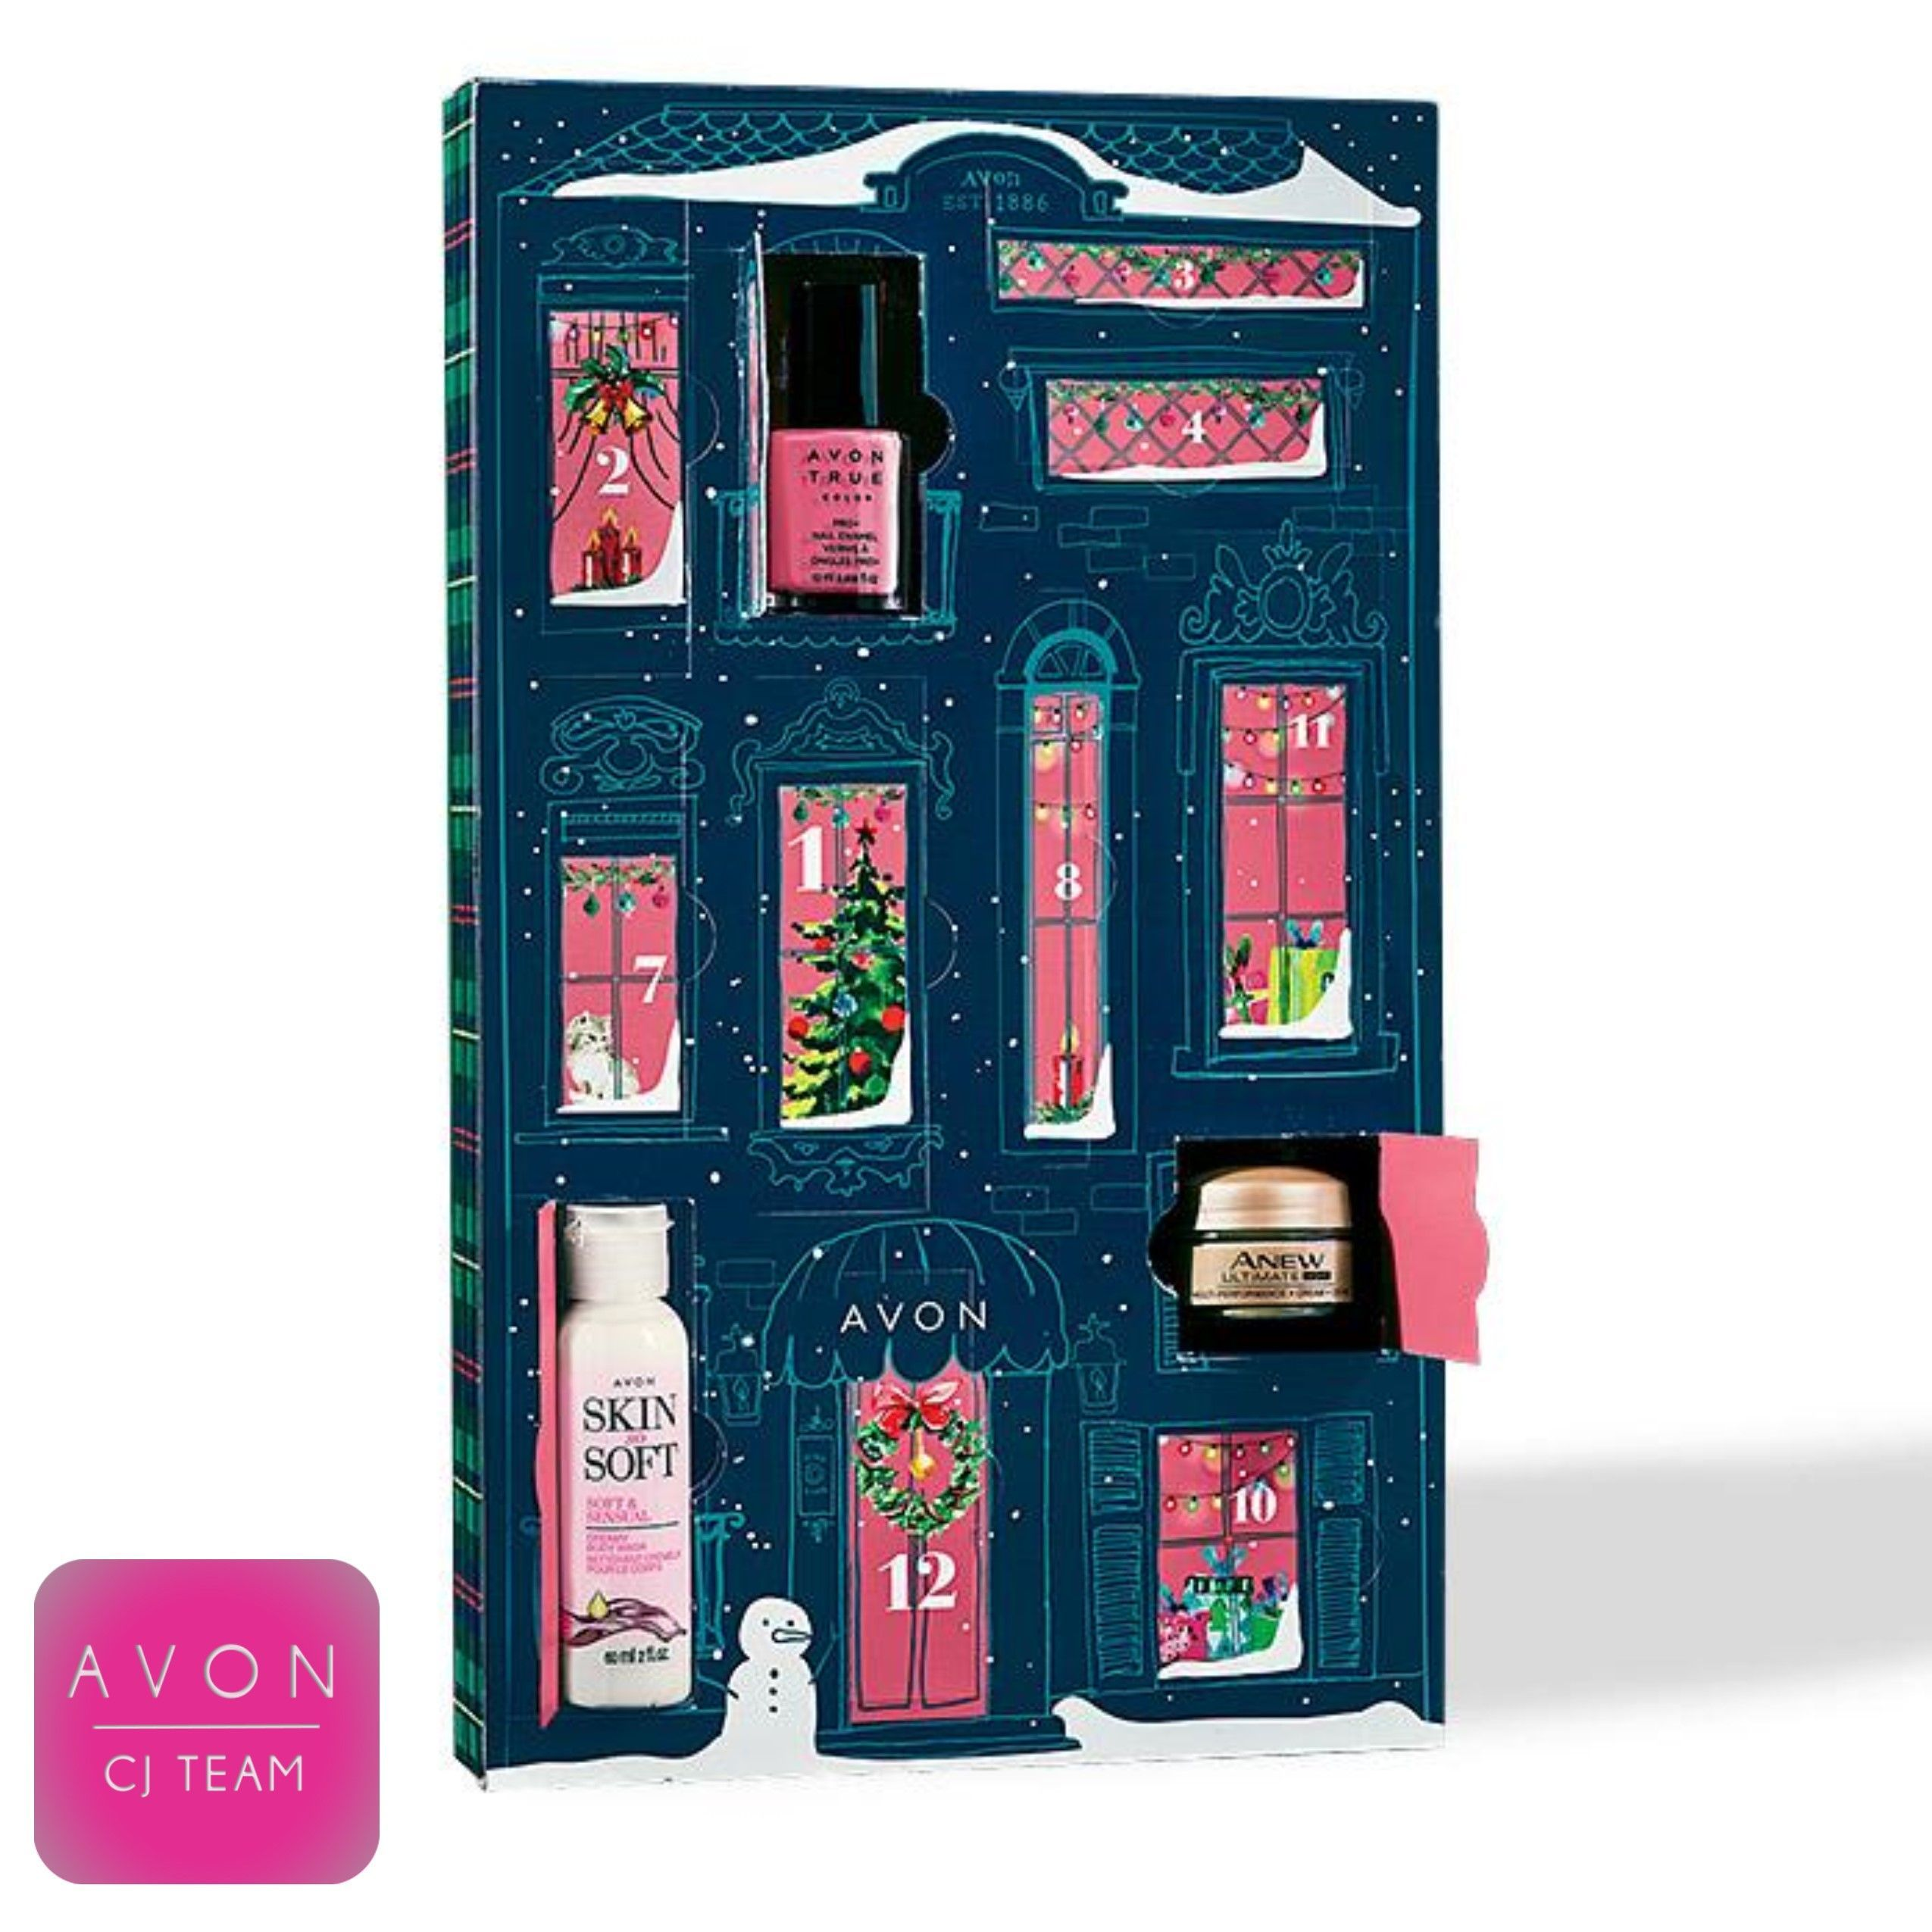 12 Days Of Beauty Beauty Behind Every Door A Beautiful Holiday Surprise For The 12 Days Of Christmas Gift Surp Beauty Calendar Christmas Beauty Avon